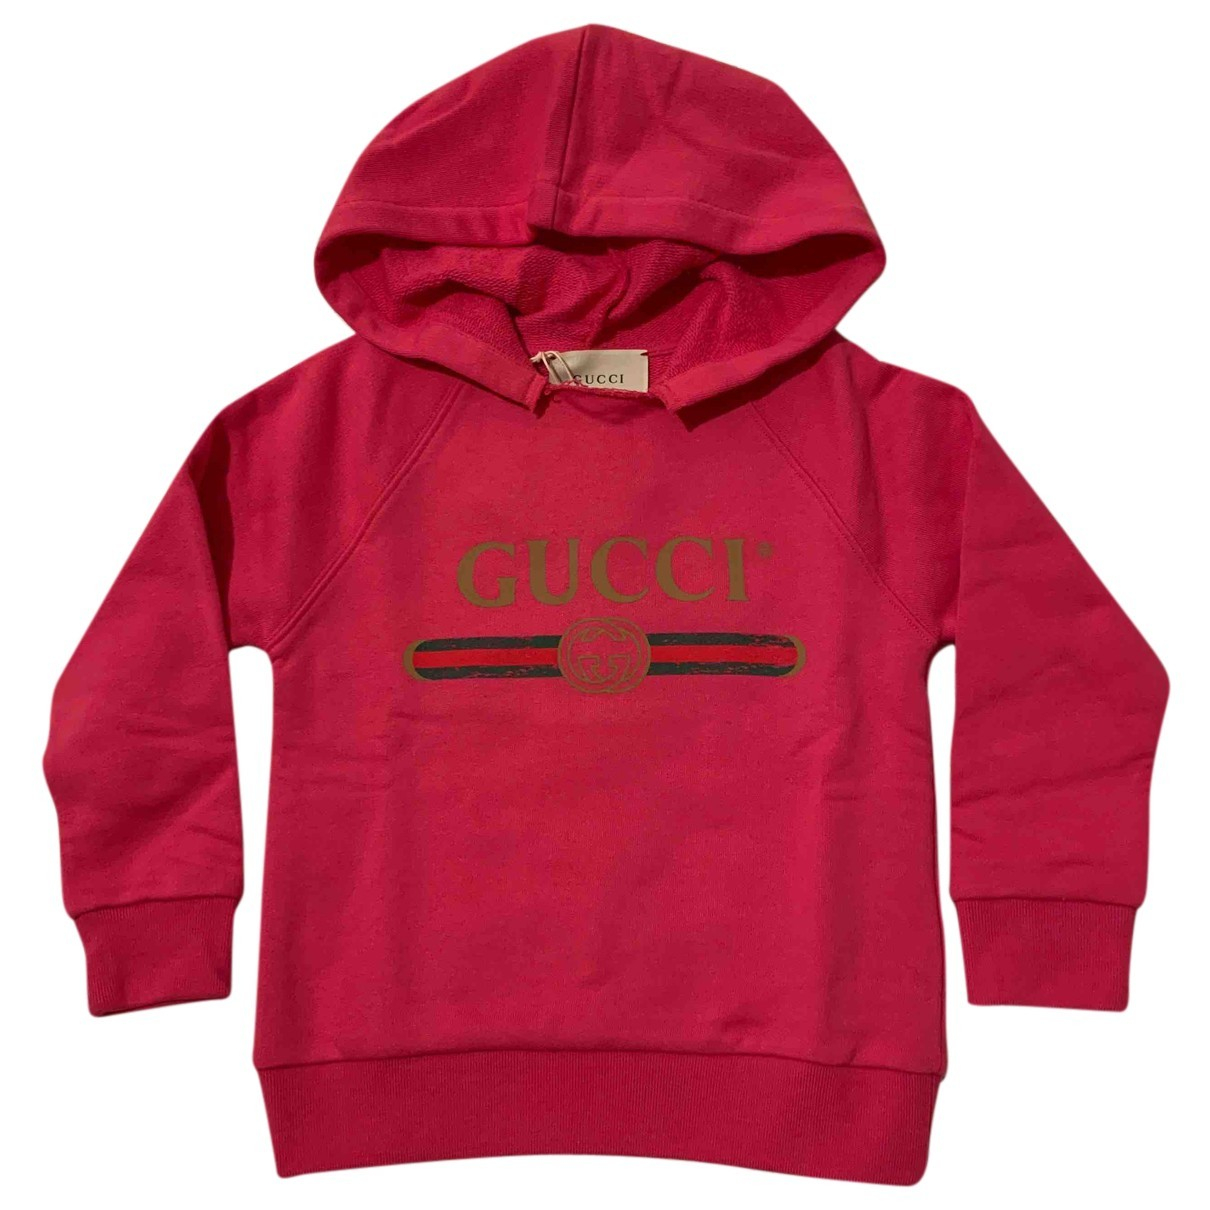 Gucci N Cotton Knitwear for Kids 4 years - up to 102cm FR